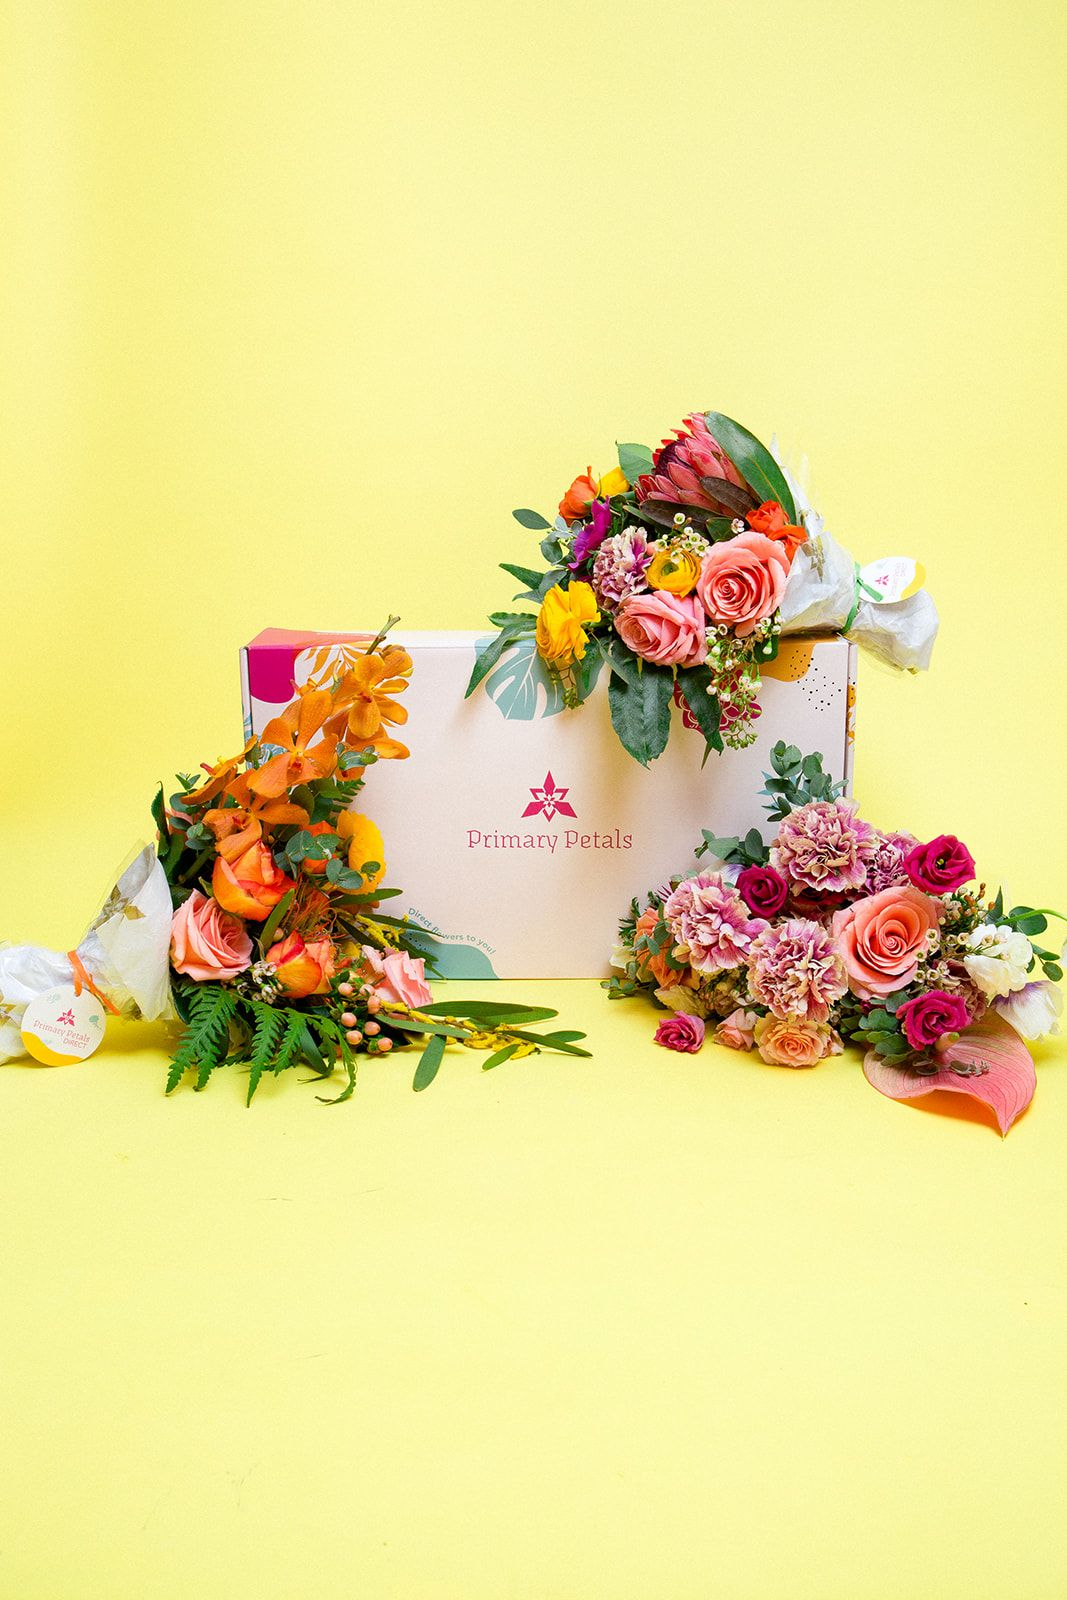 Home Flower subscription, Flower delivery, Flower